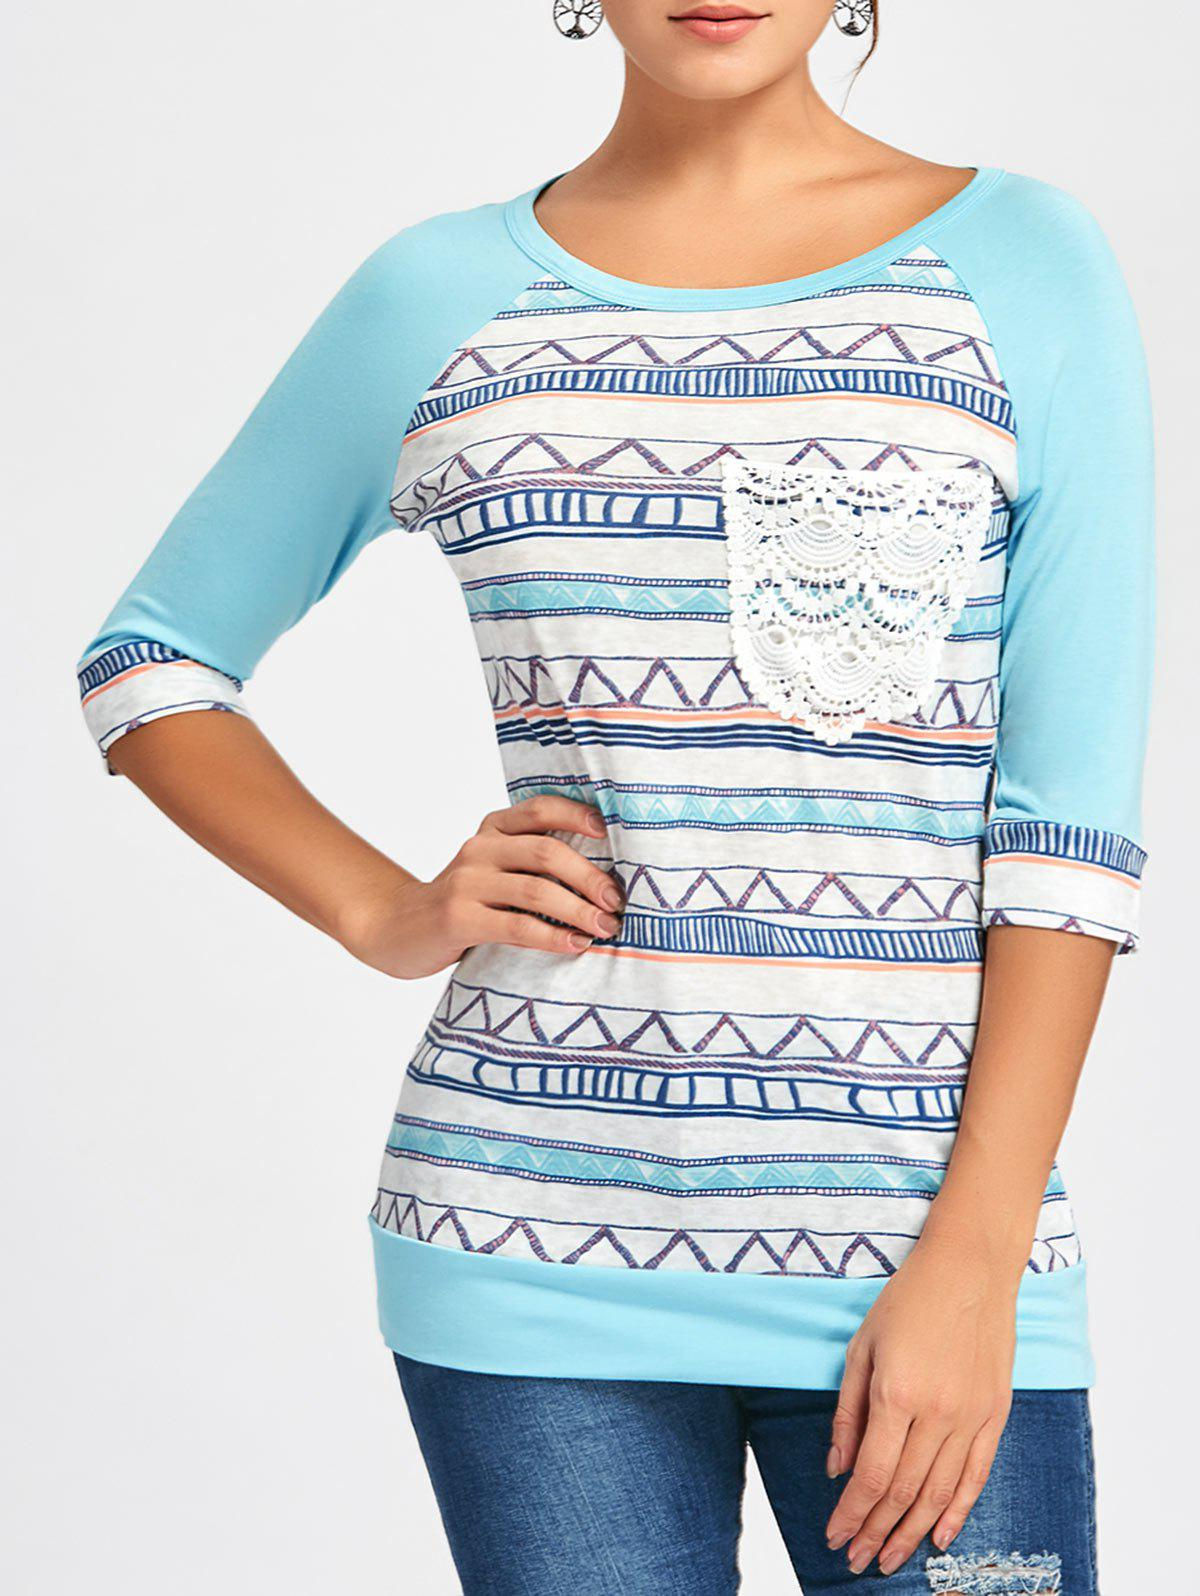 Crochet Pocket Raglan Sleeve Printed T-shirt - LIGHT BLUE S